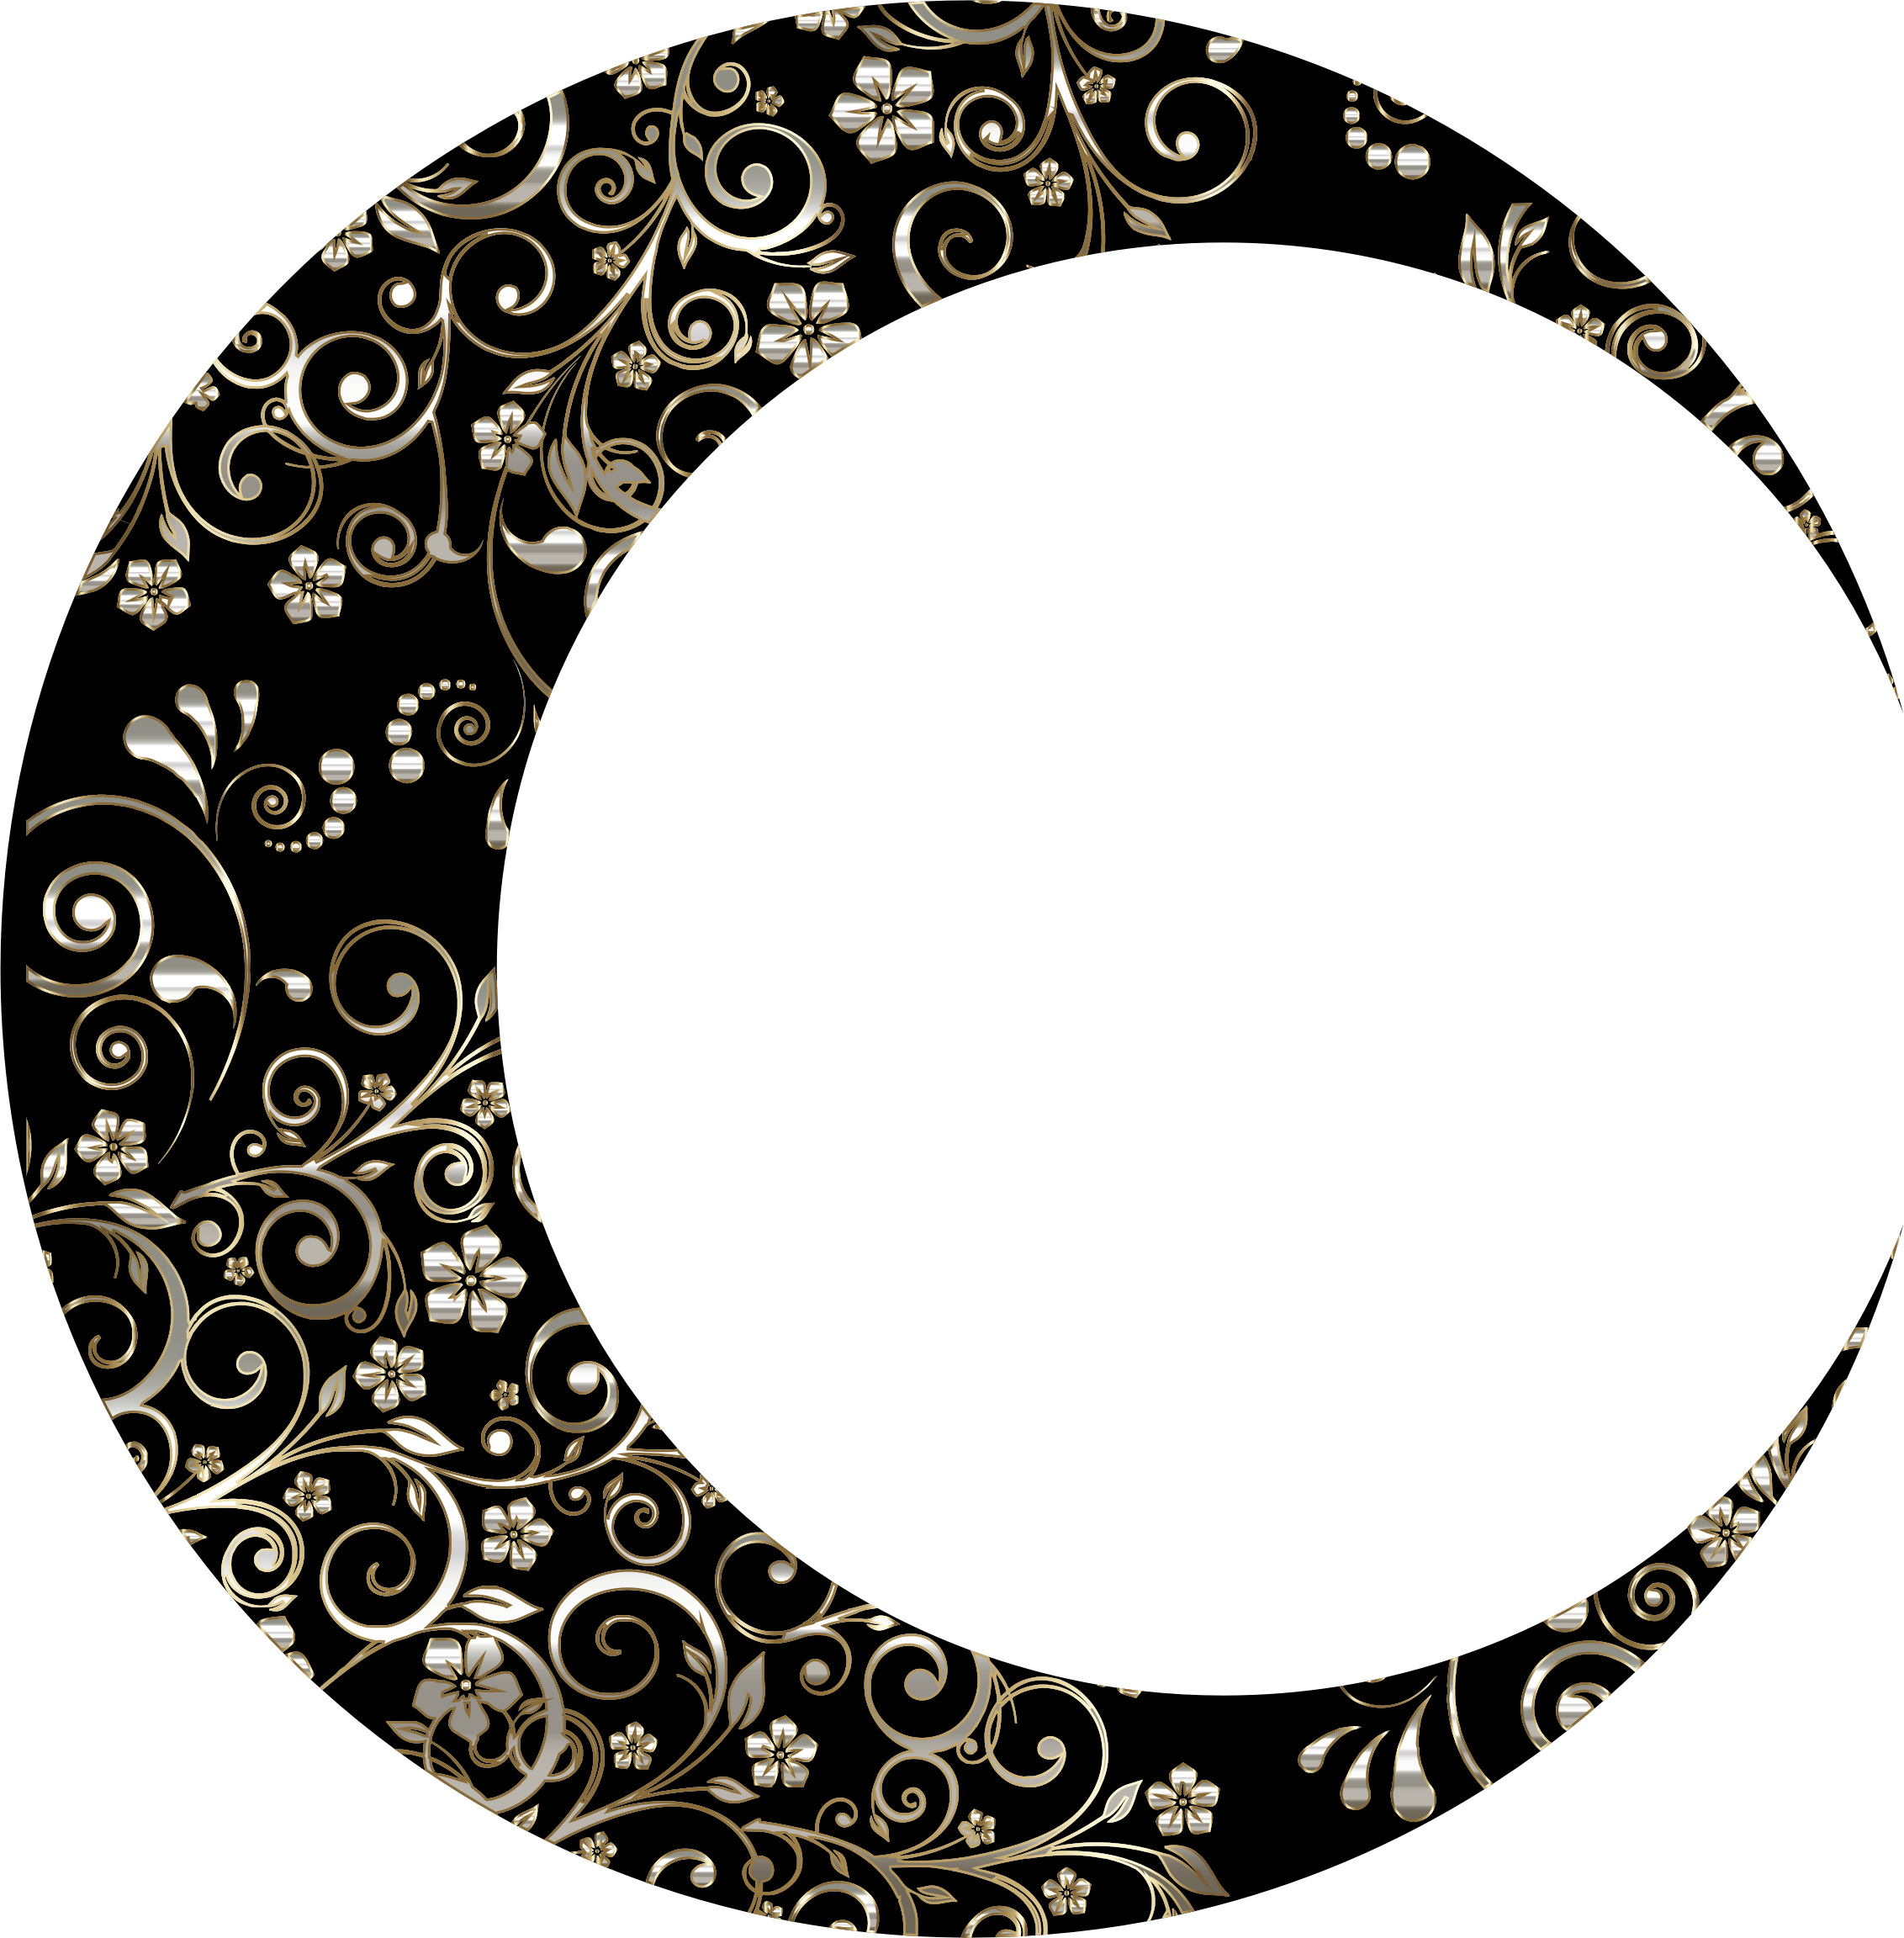 Gold Floral Crescent Moon Mark II 11 by GDJ